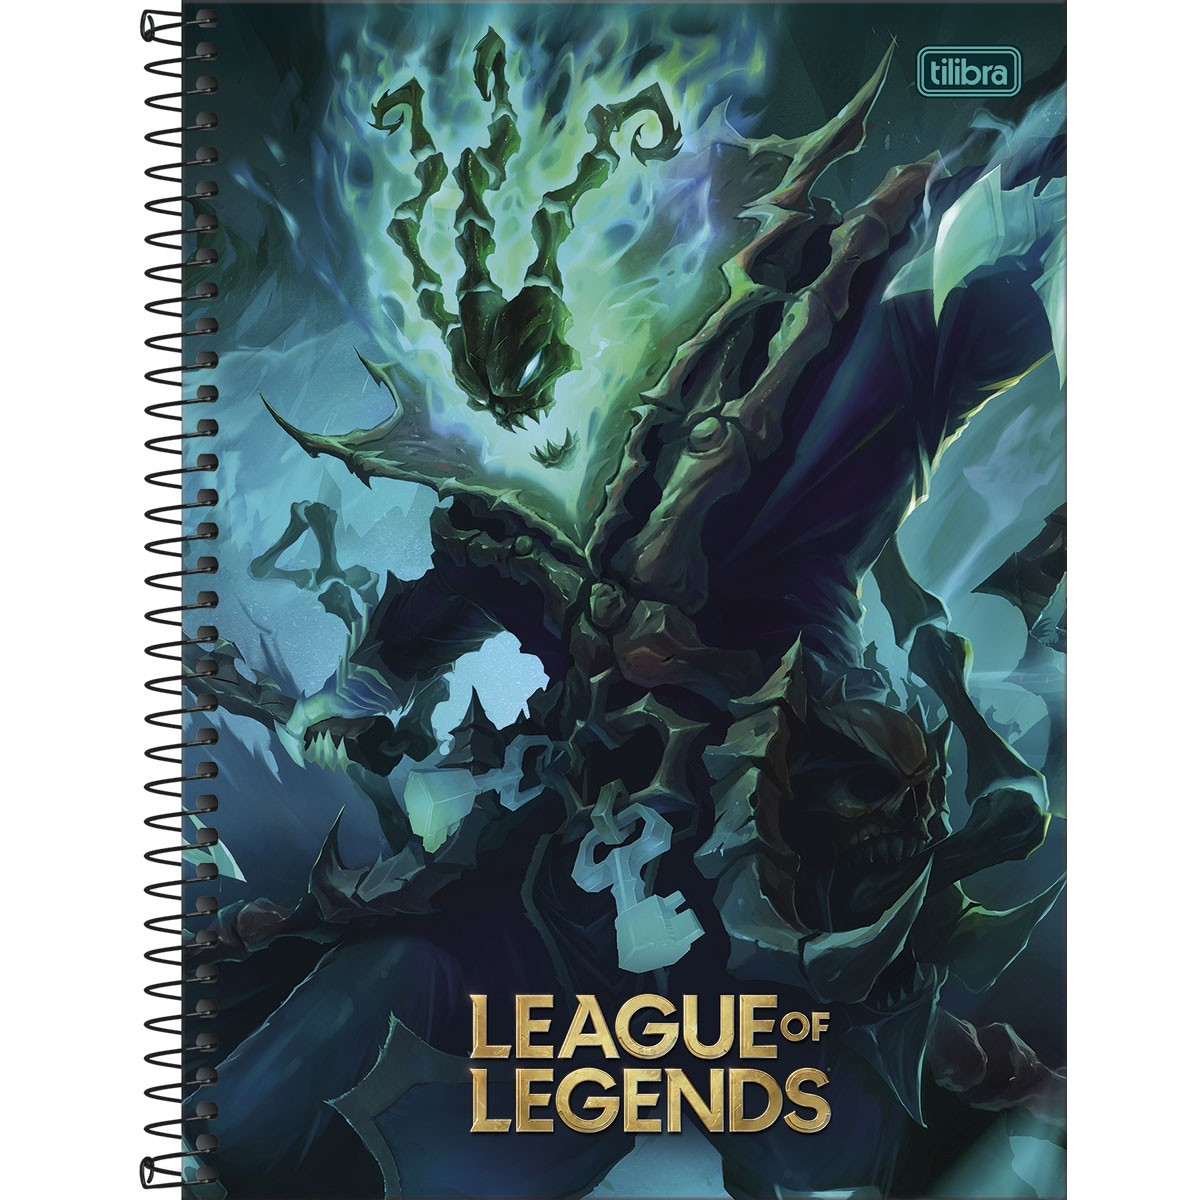 Caderno Espiral Capa Dura Universitário 16 Matérias League of Legends Tresh 256 Folhas